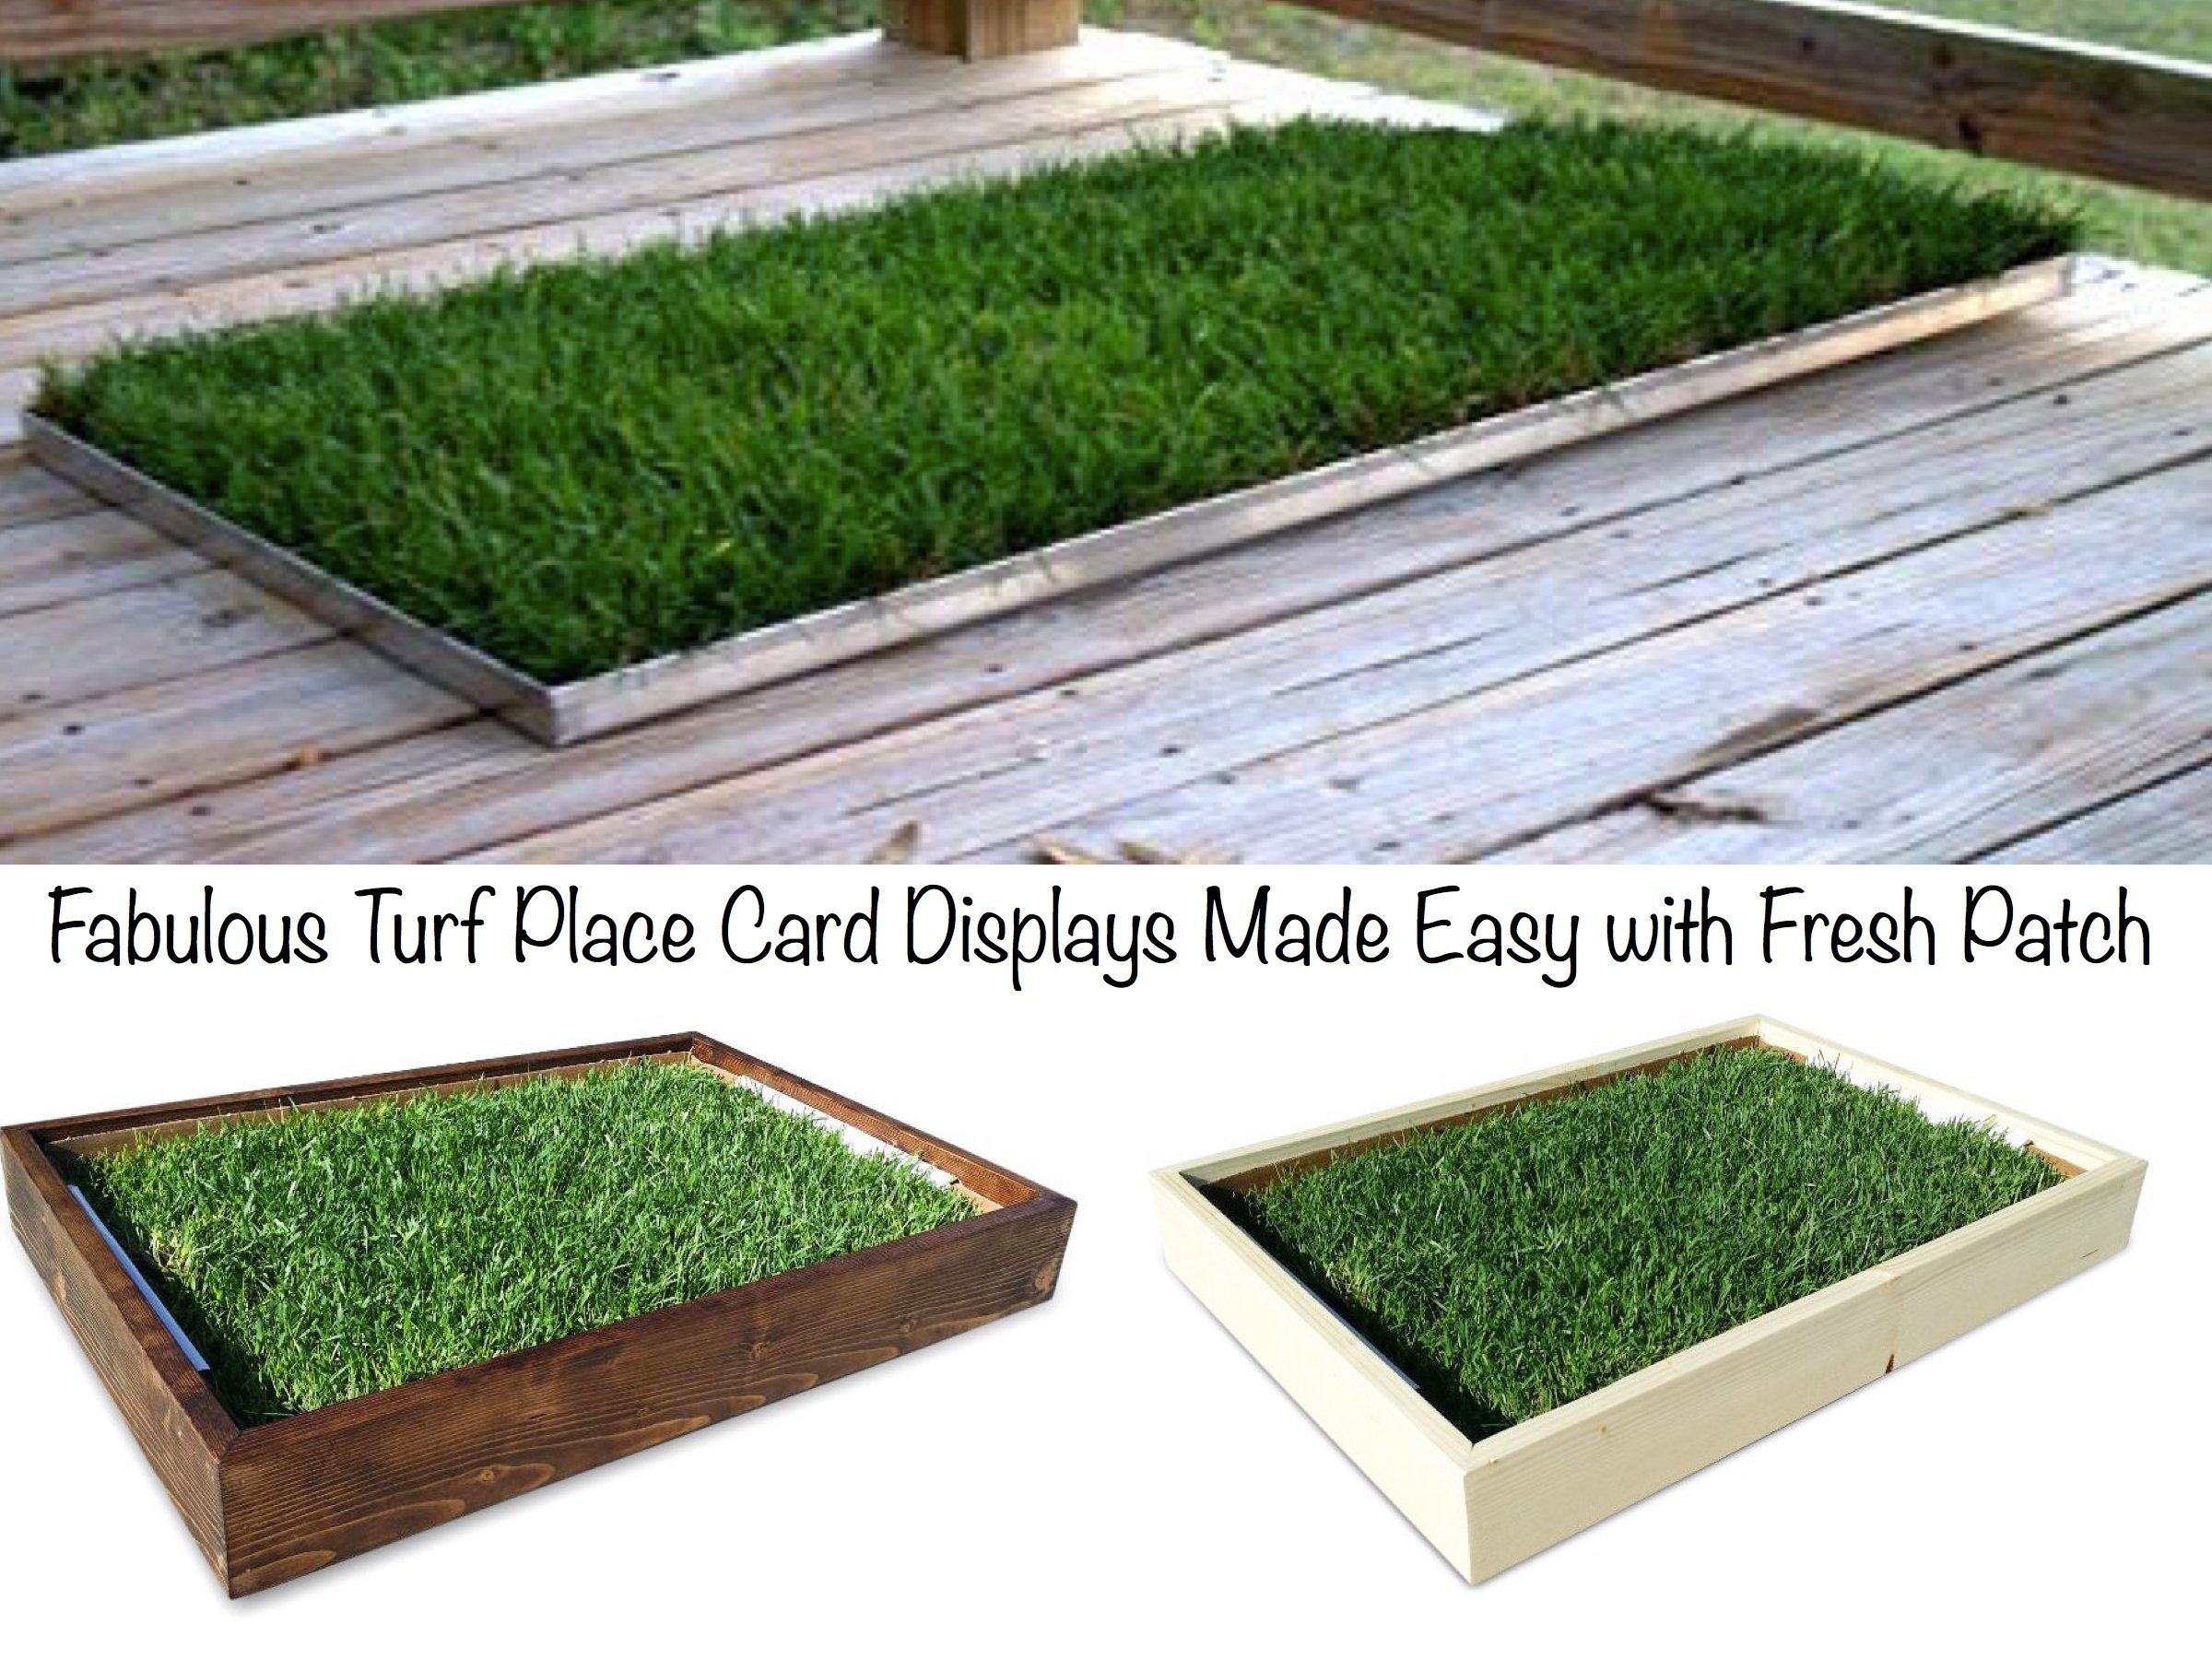 Fabulous Turf Place Card Displays Made Easy with Fresh Patch